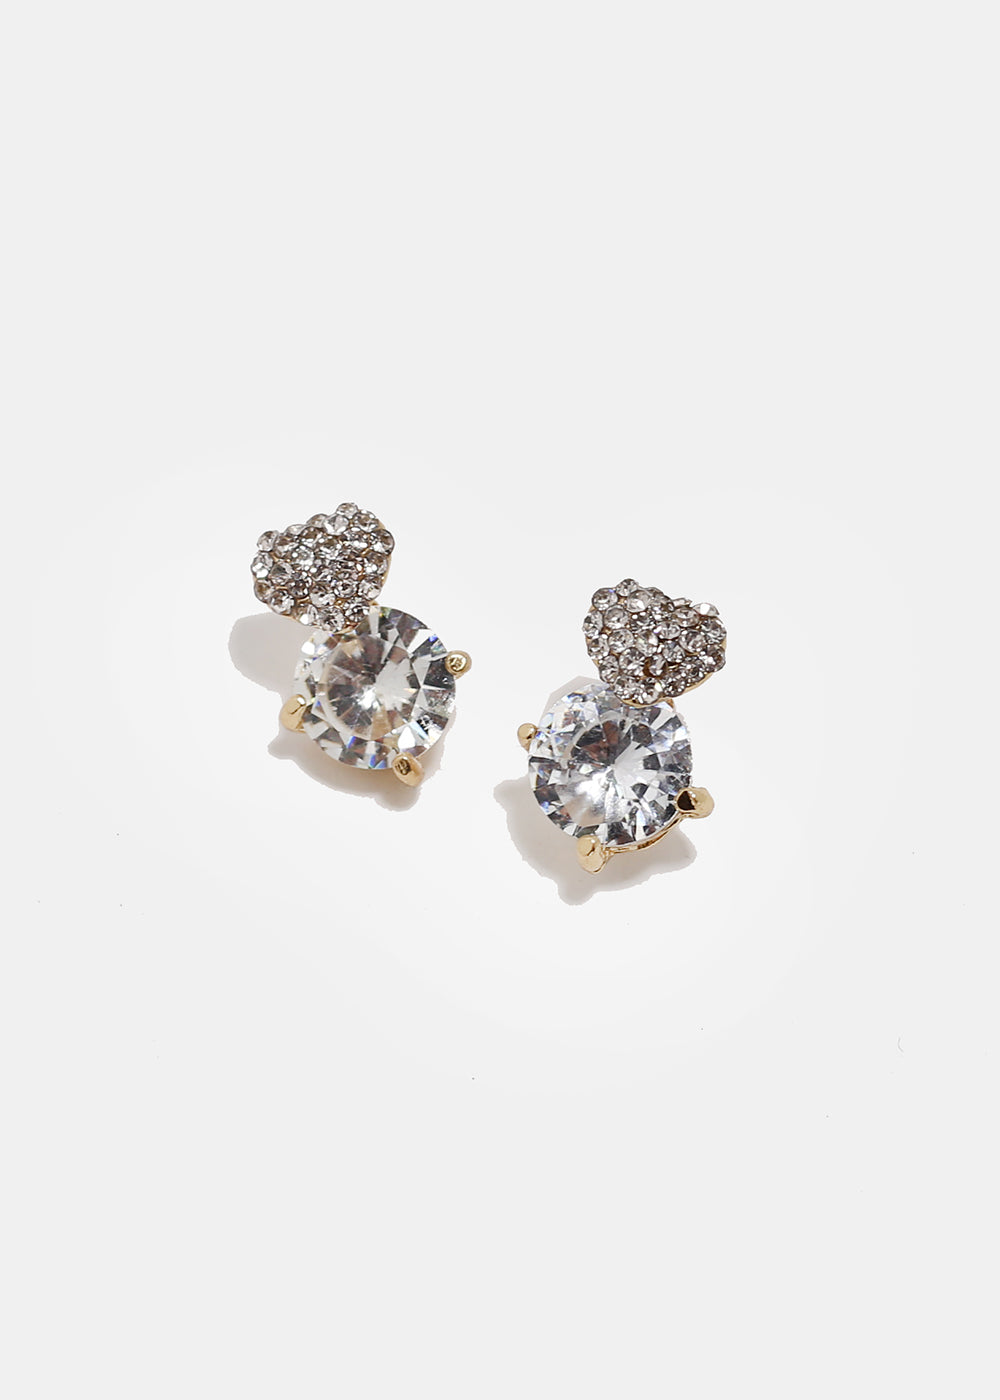 Heart Gem Stud Earrings